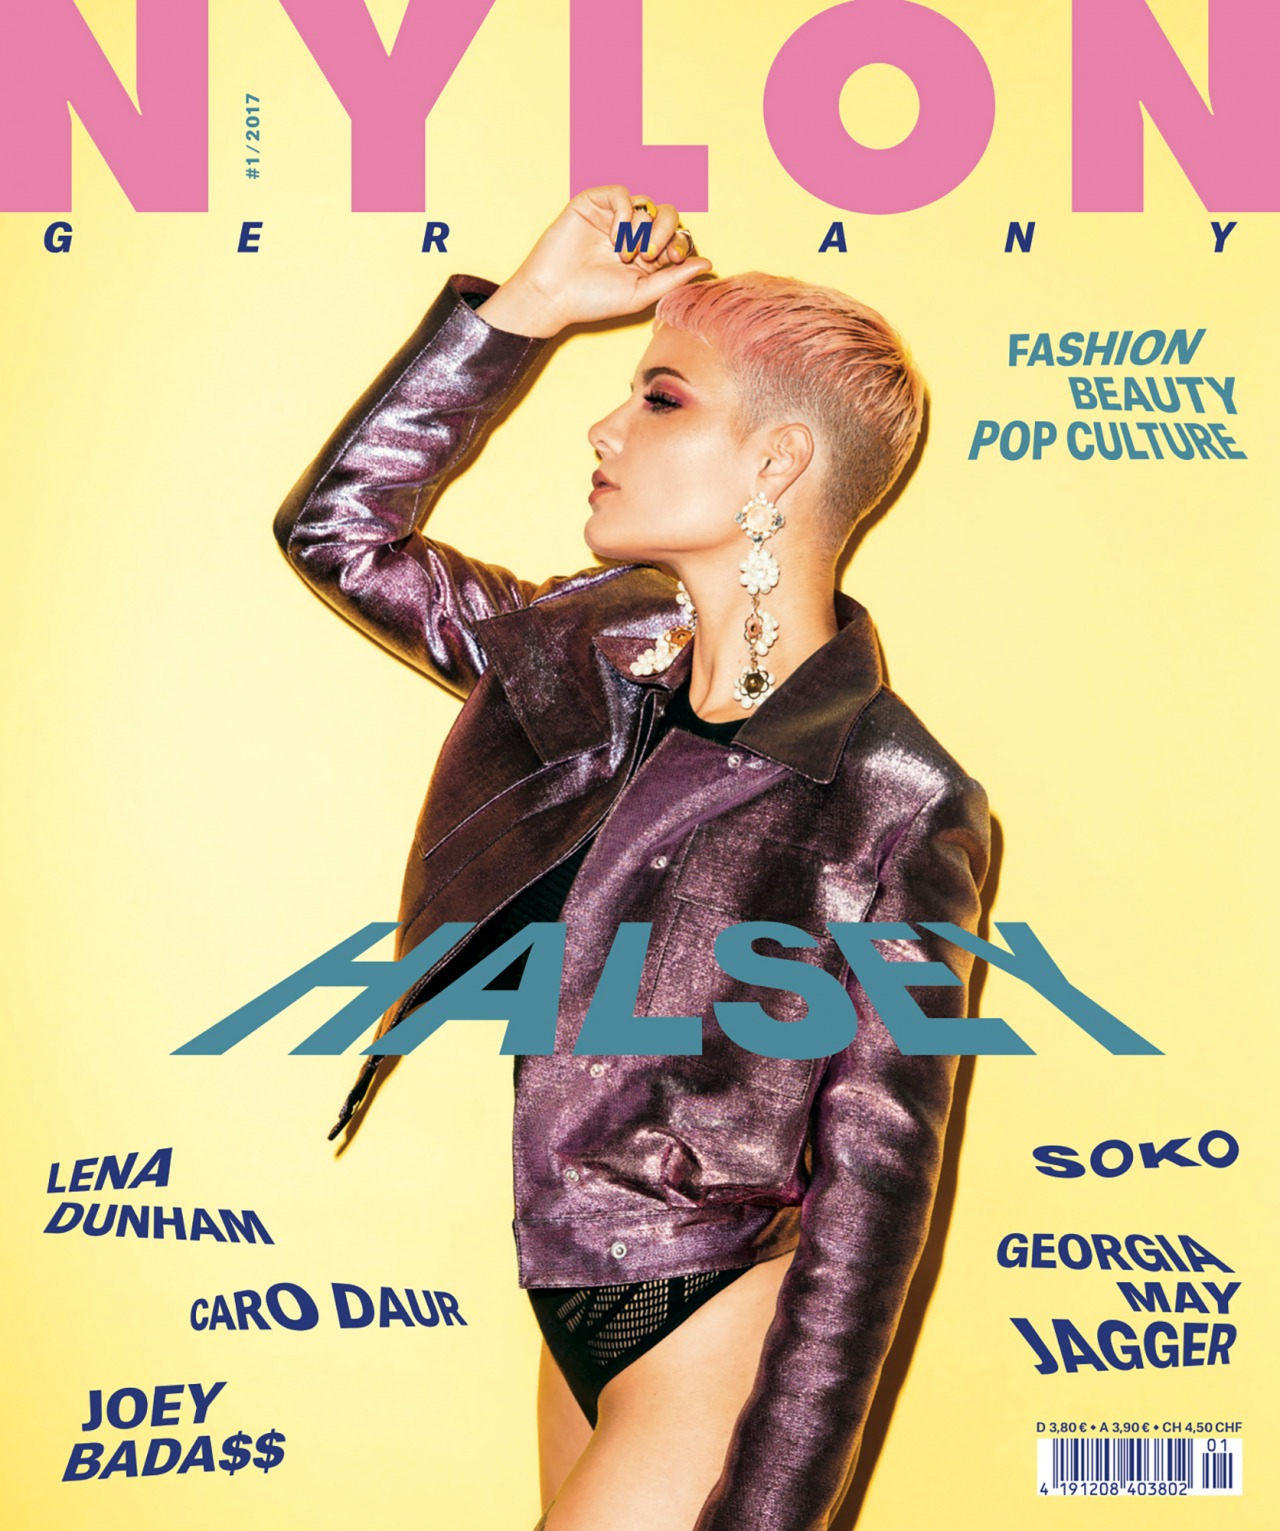 RETUSH Creative Retouching NYLON Magazine